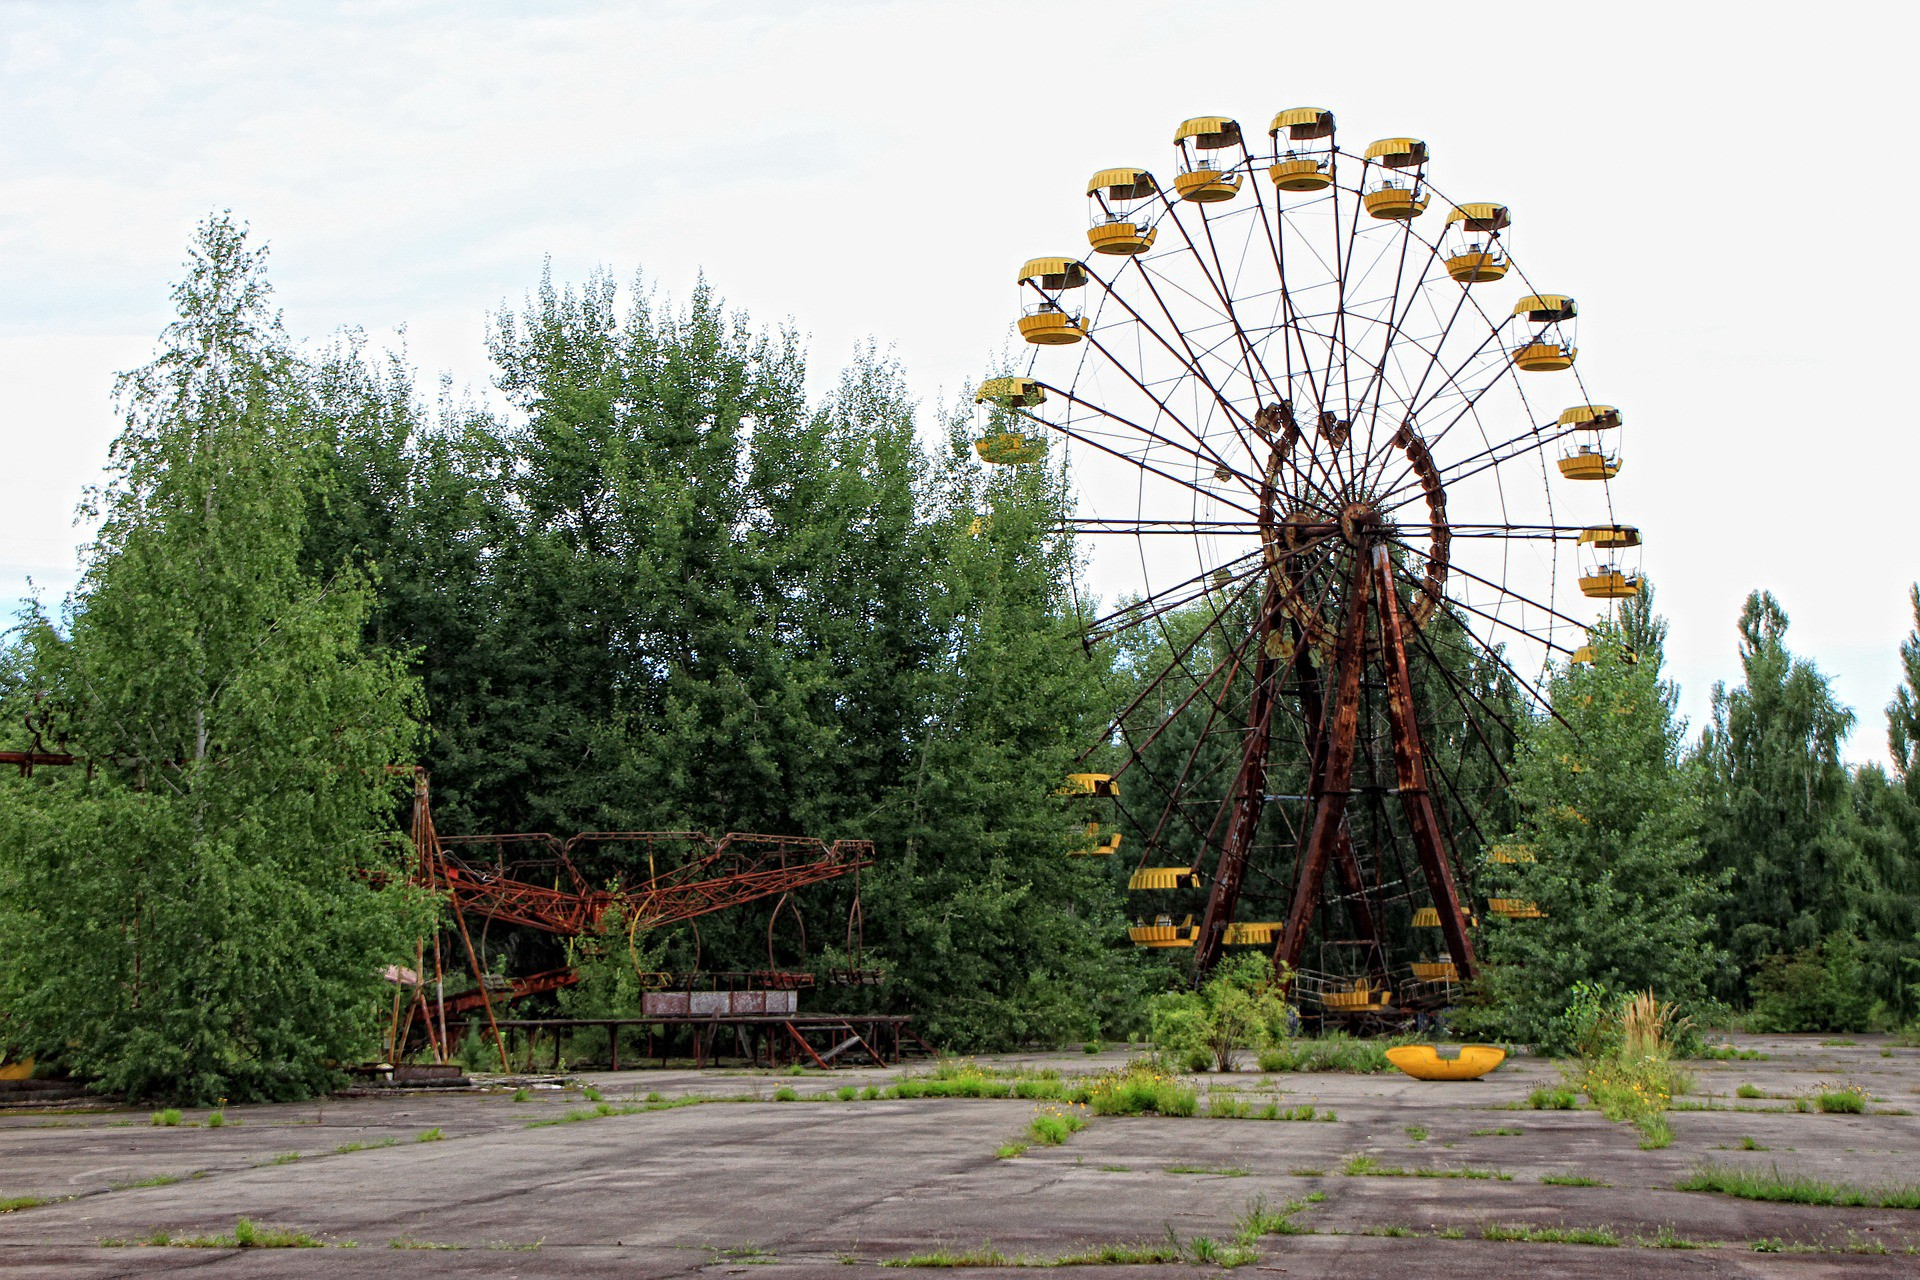 Voices of Chernobyl by Svetlana Alexievich - The Junction